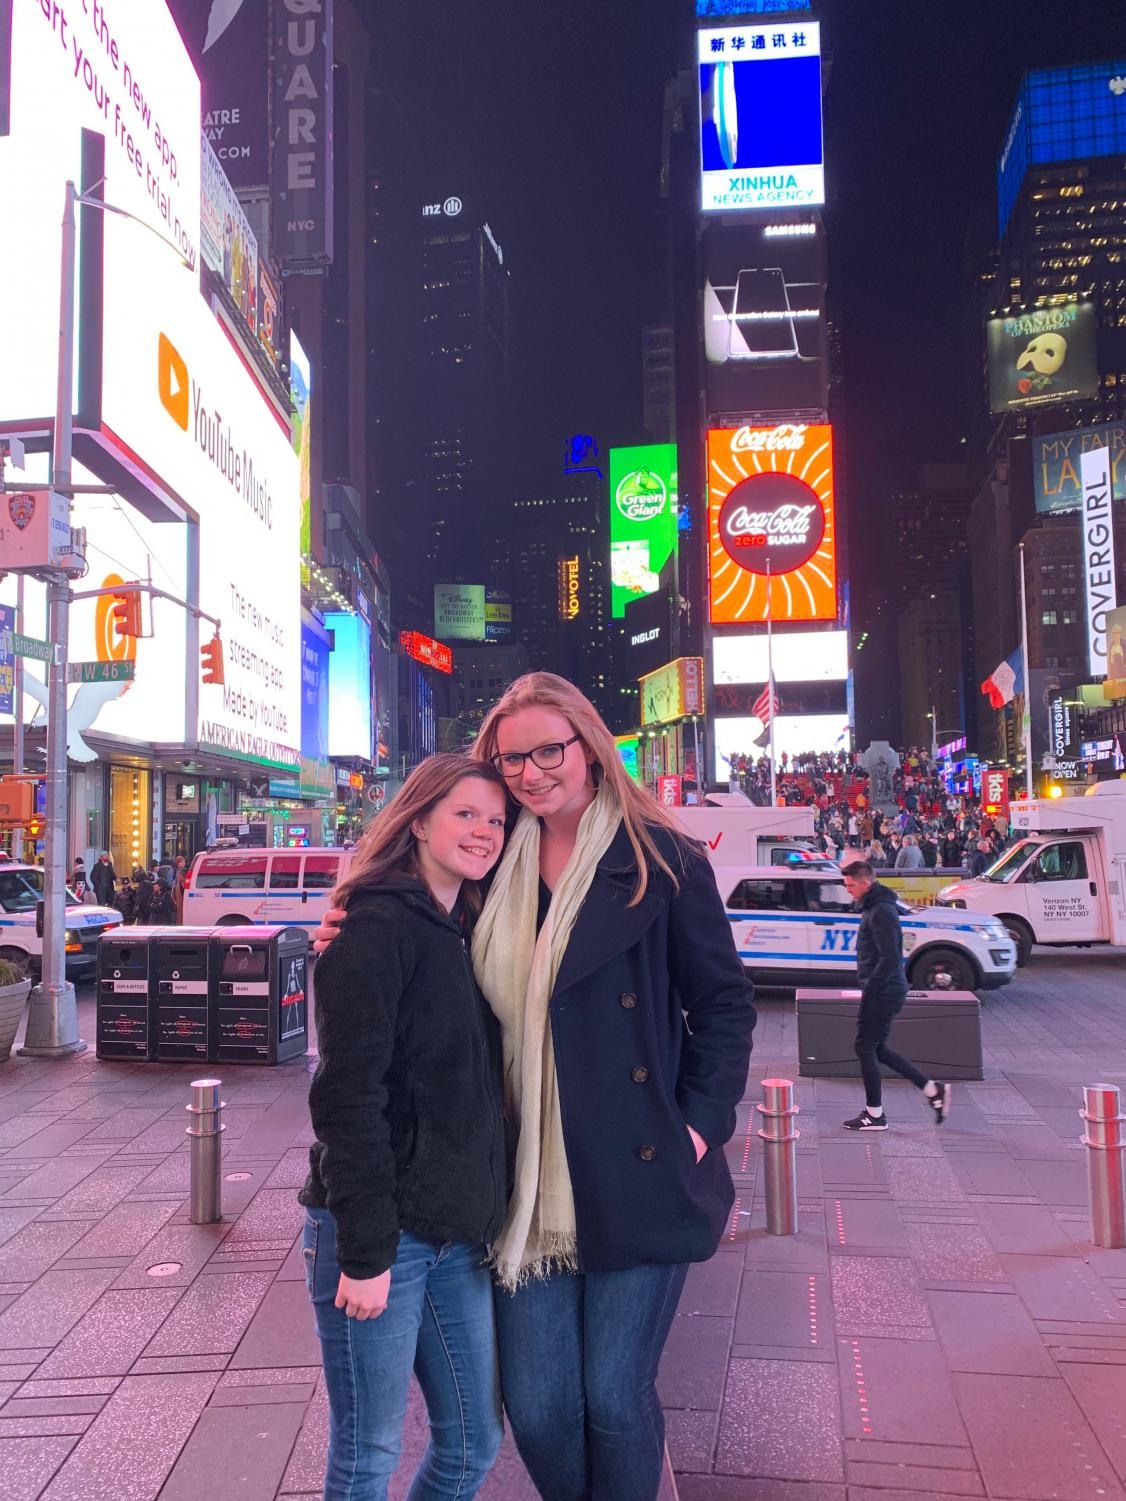 The two new yearbook chiefs pose in Times Square during a yearbook convention in New York.